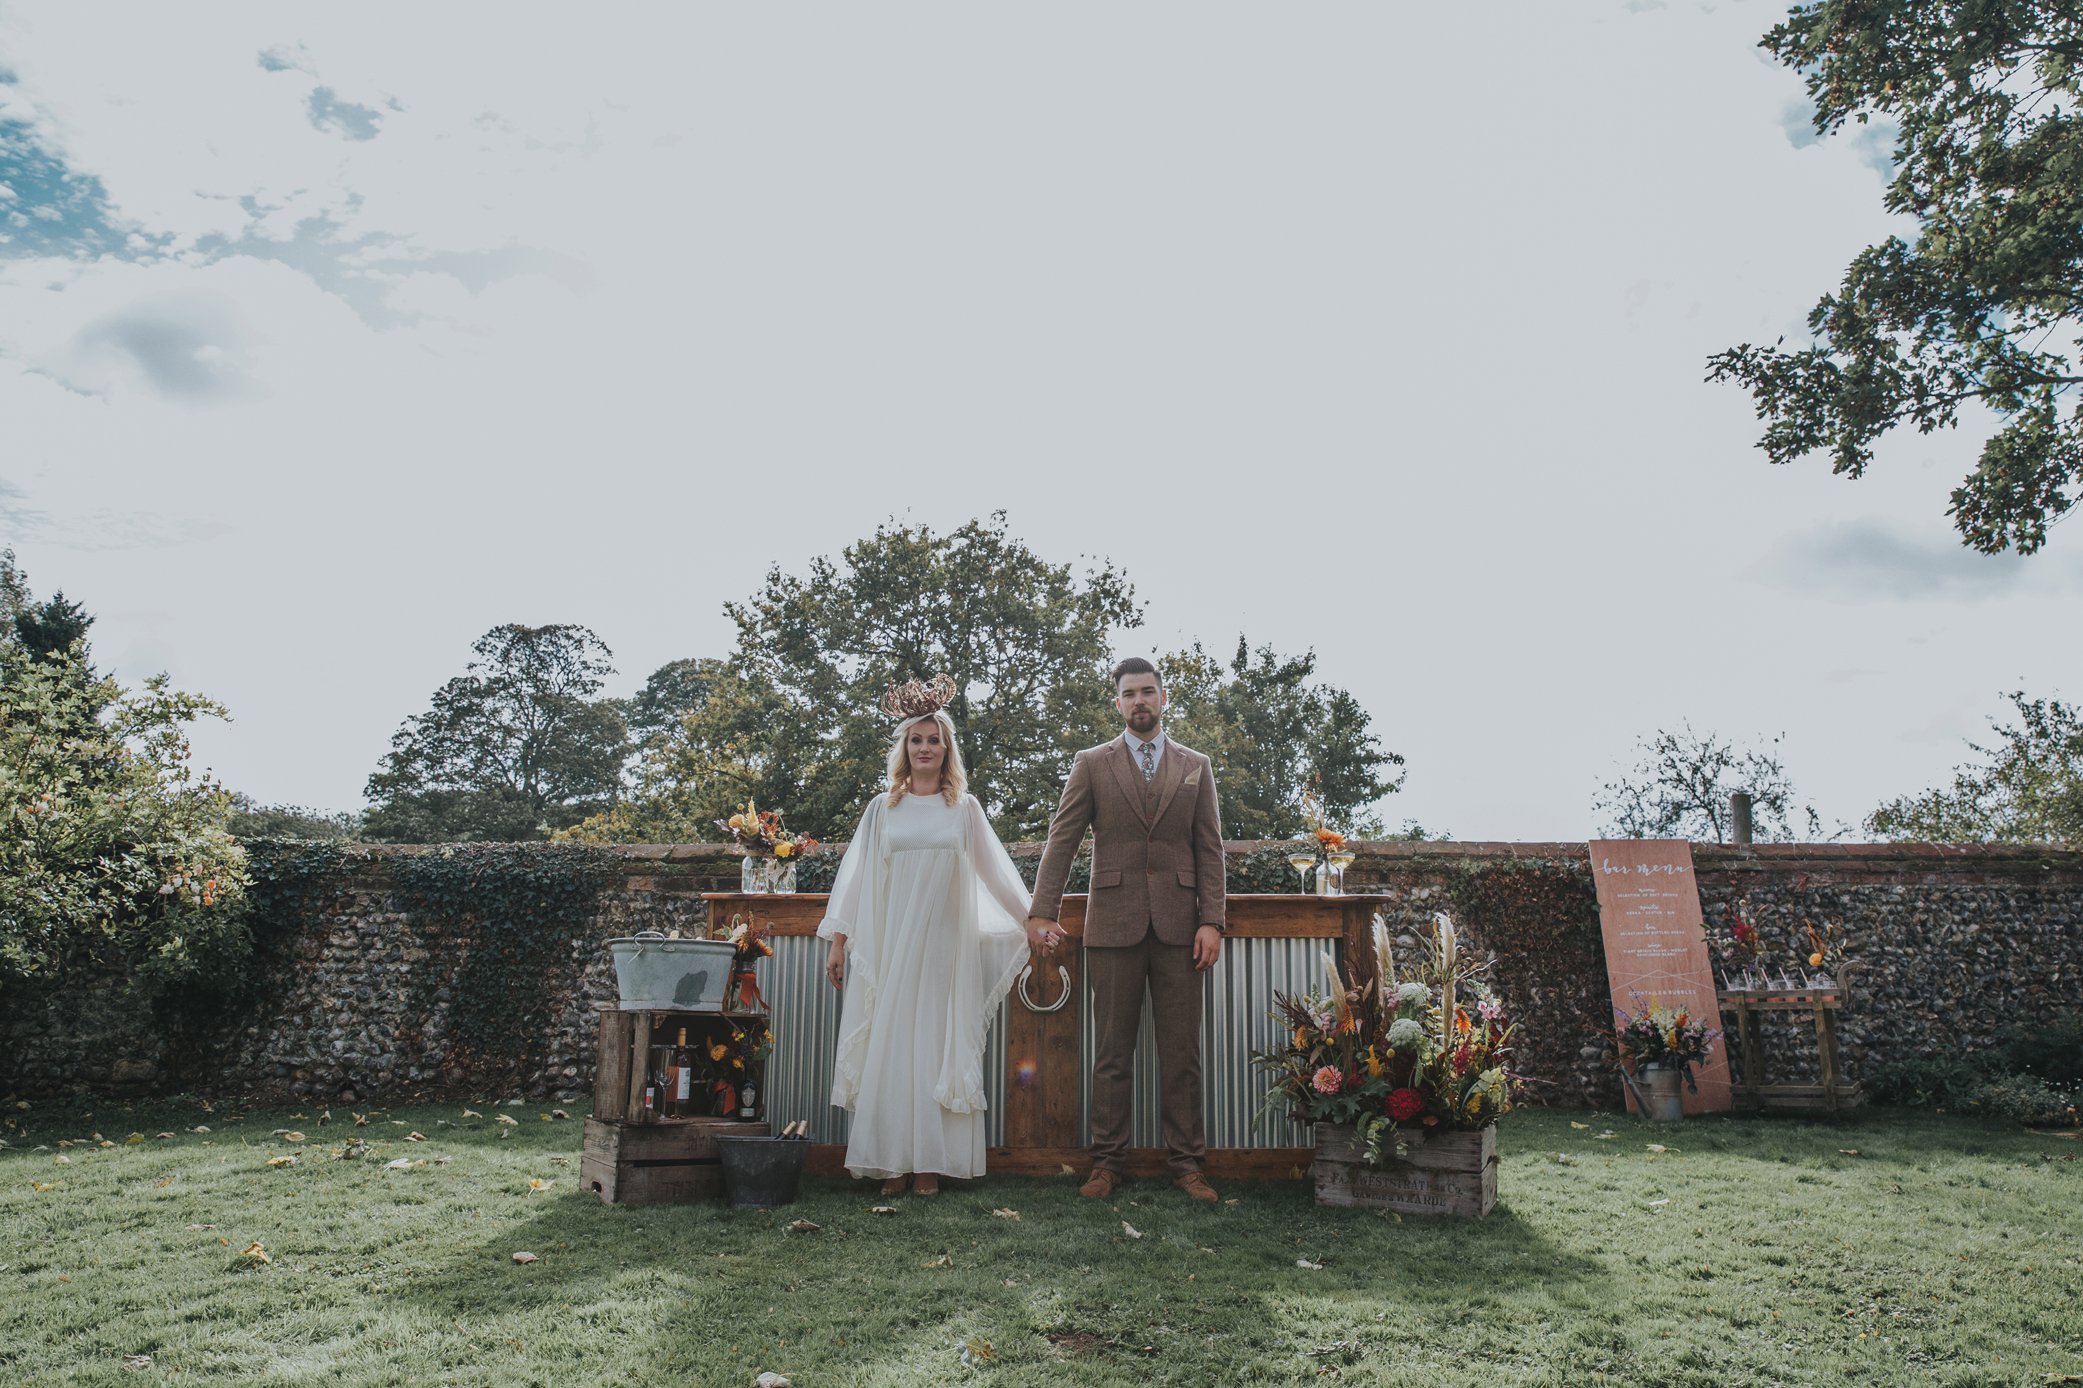 Norfolk_Wedding_Esther_Wild_Little_Horse_Box_IMG_2258.jpg